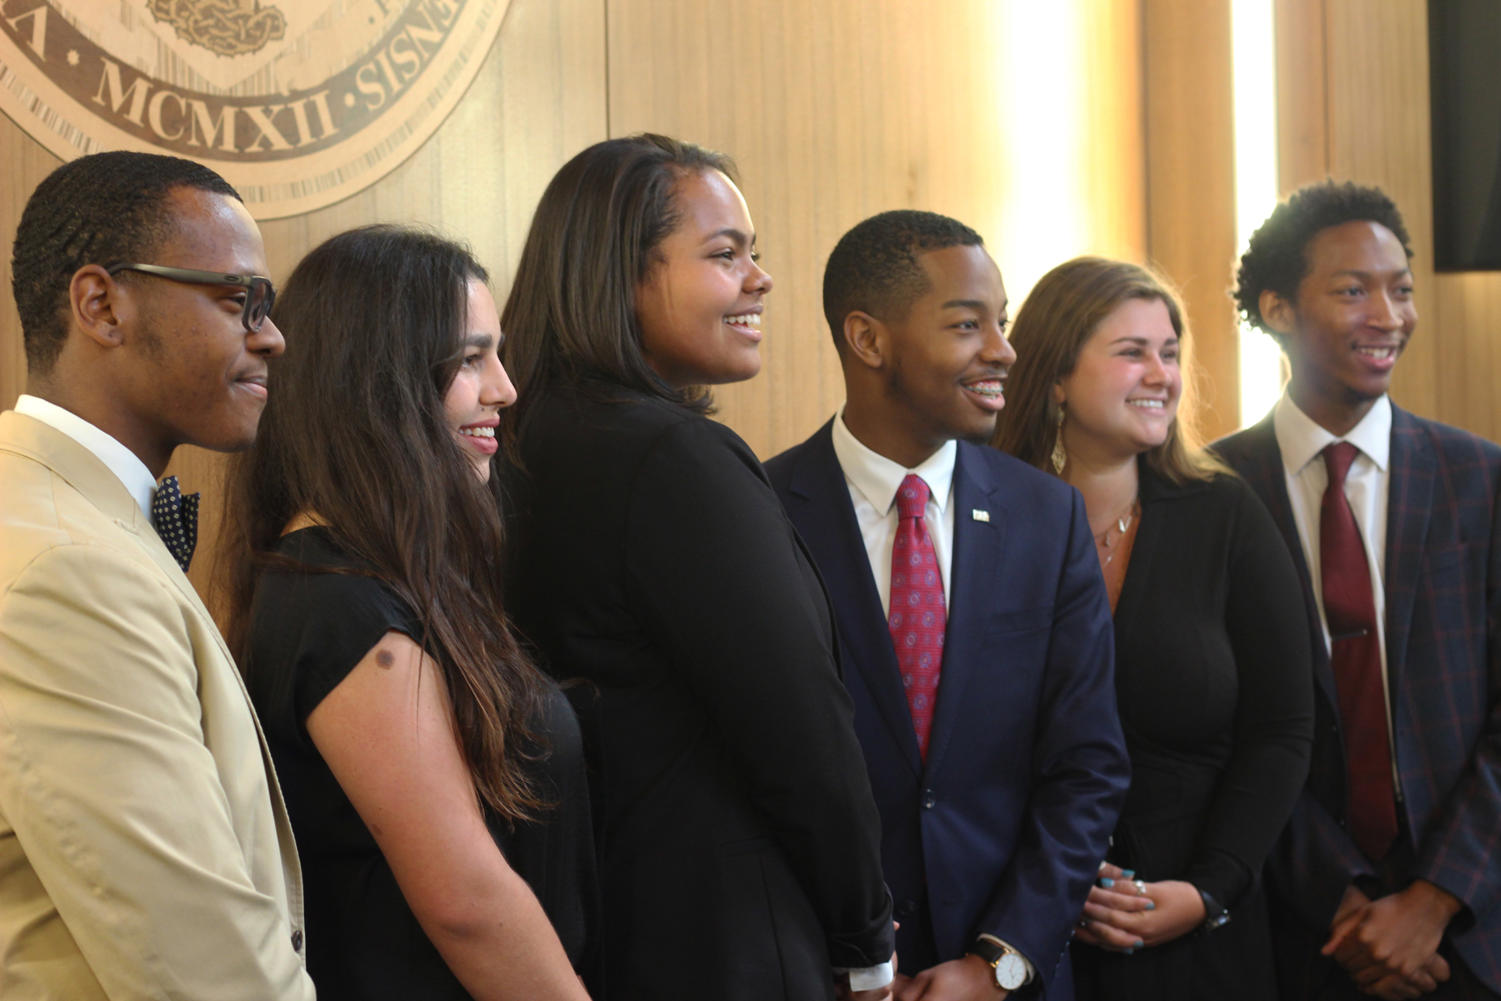 SGA's executive branch is inaugurated in Thomas Hall on April 10th. The administration is still without a Director of Communications for the 2019-2020 school year. Photo credit: Cristian Orellana